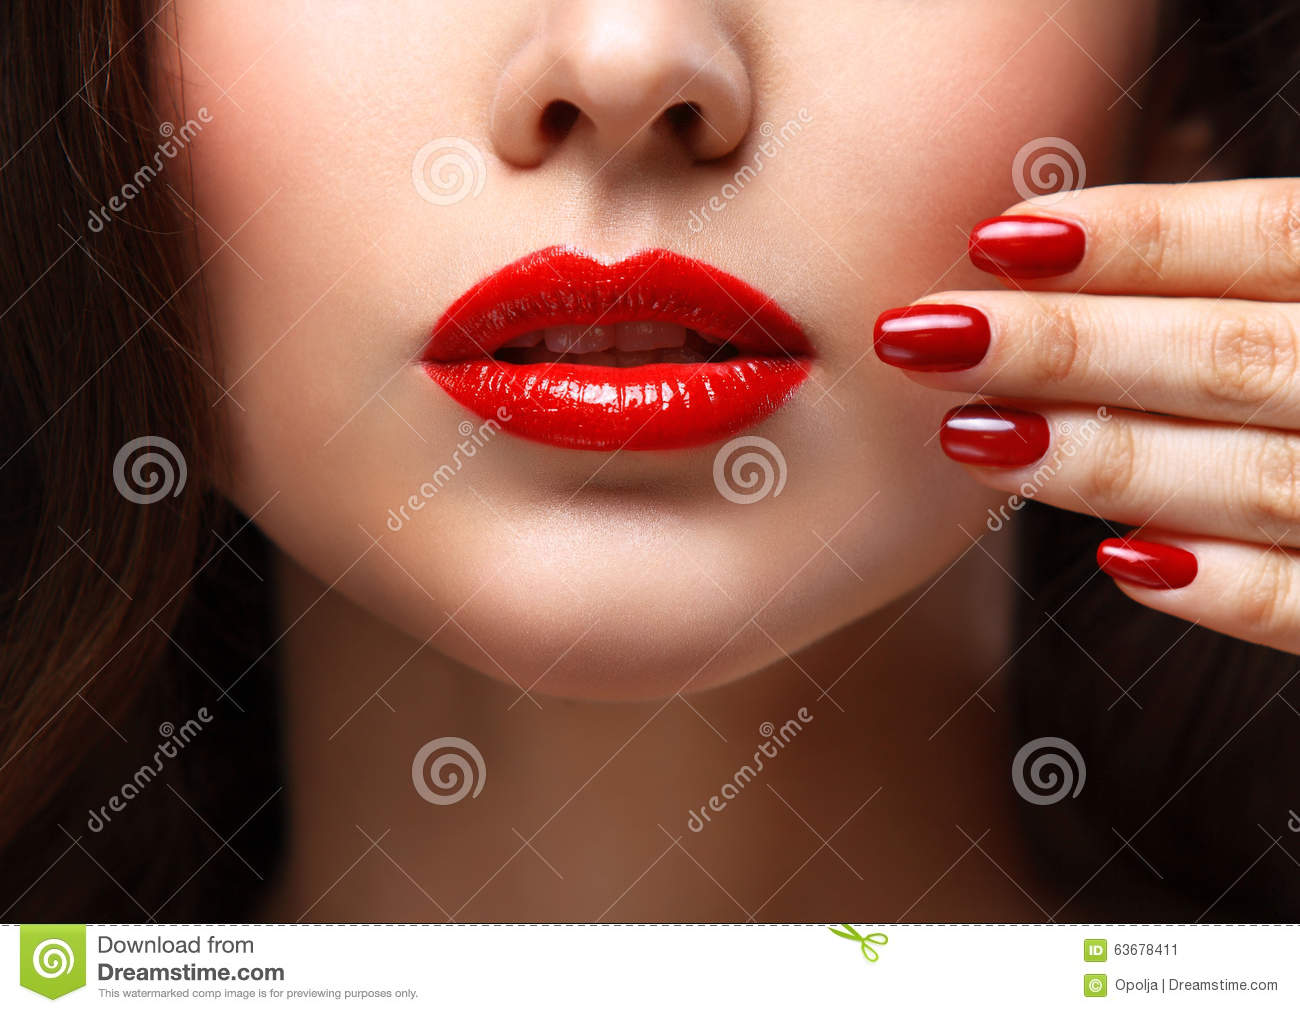 women oral lip face fetish